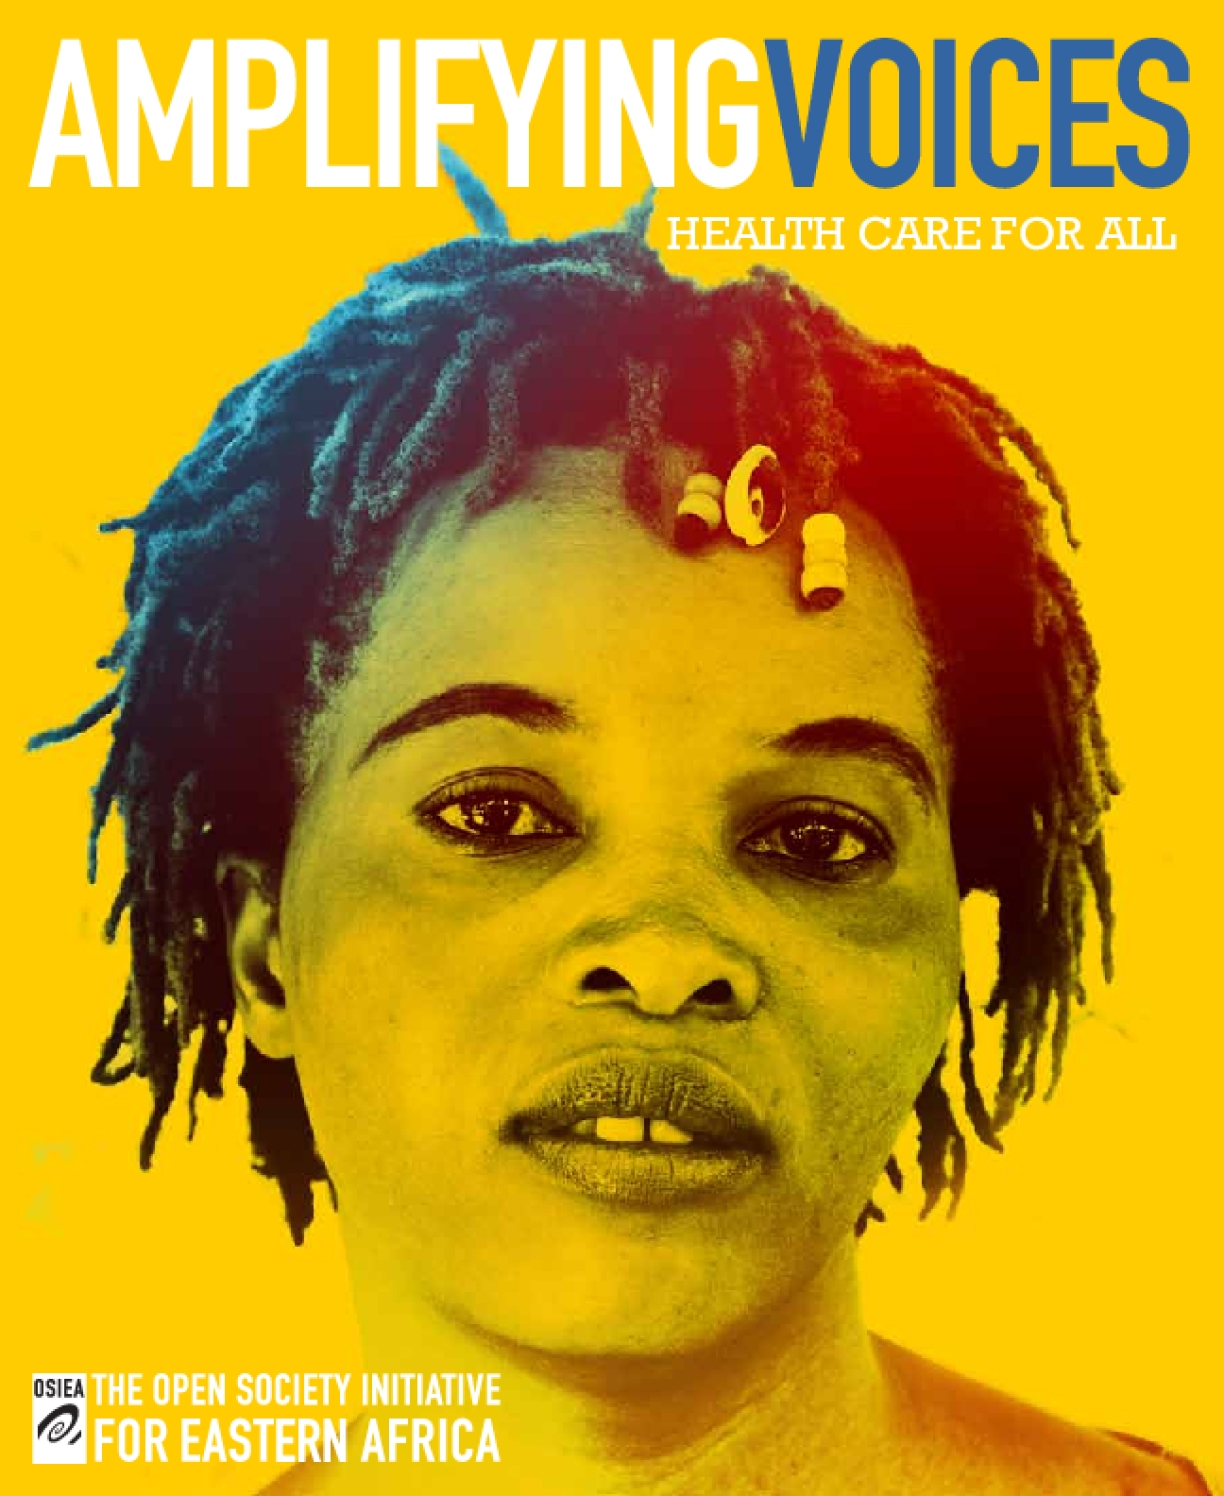 Amplifying Voices: Health Care for All